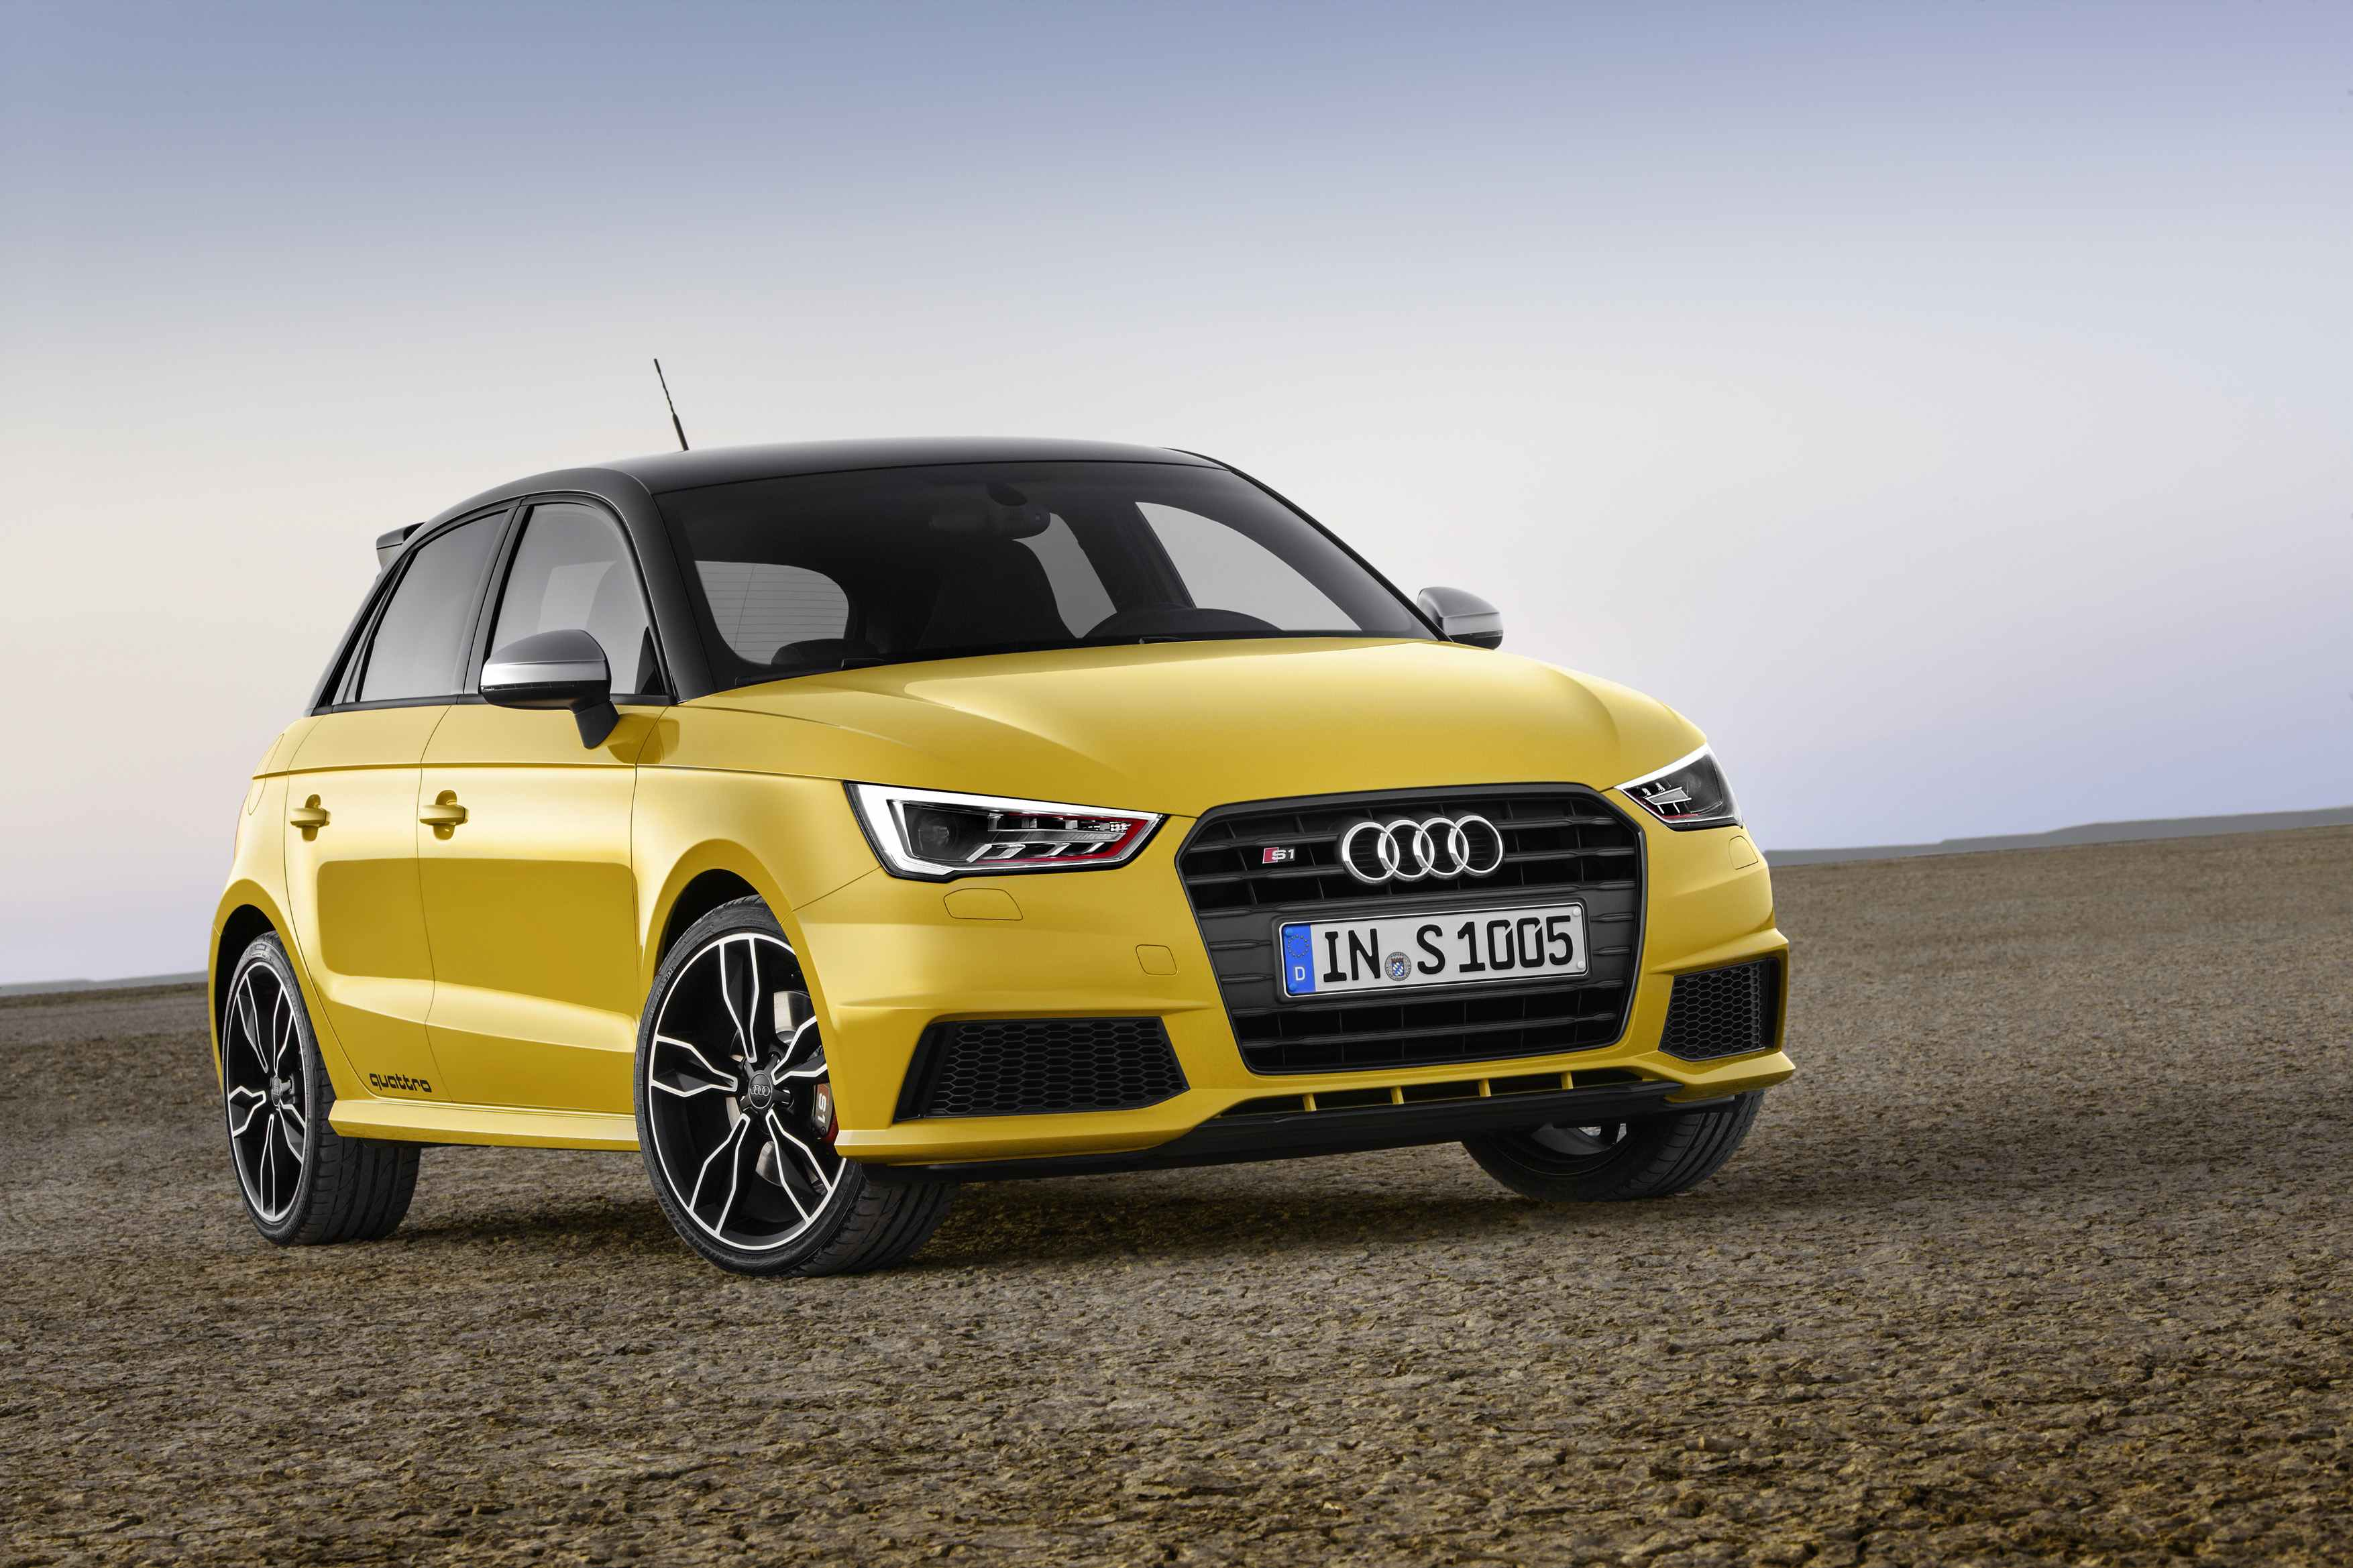 Beastly Baby Audi Breaks Cover: Latest News